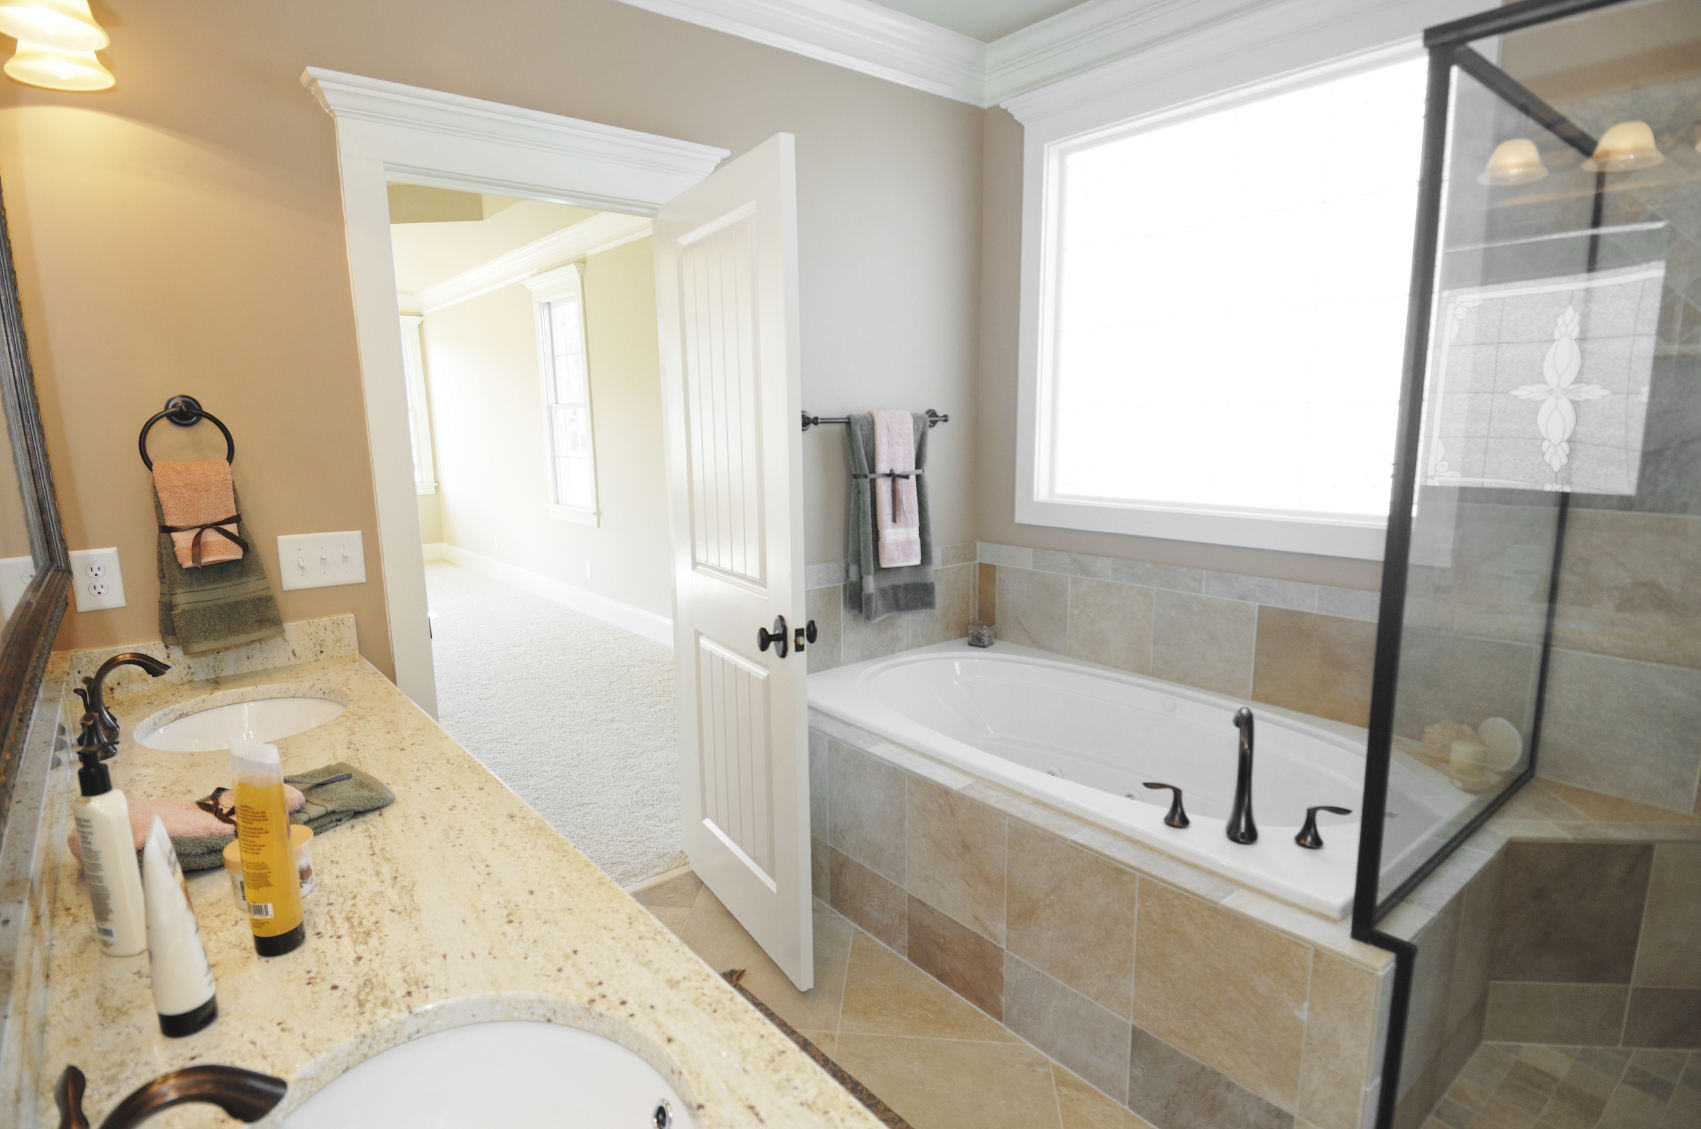 Bathroom Remodel Cost Raleigh draft your bath remodel cost estimation | homesfeed